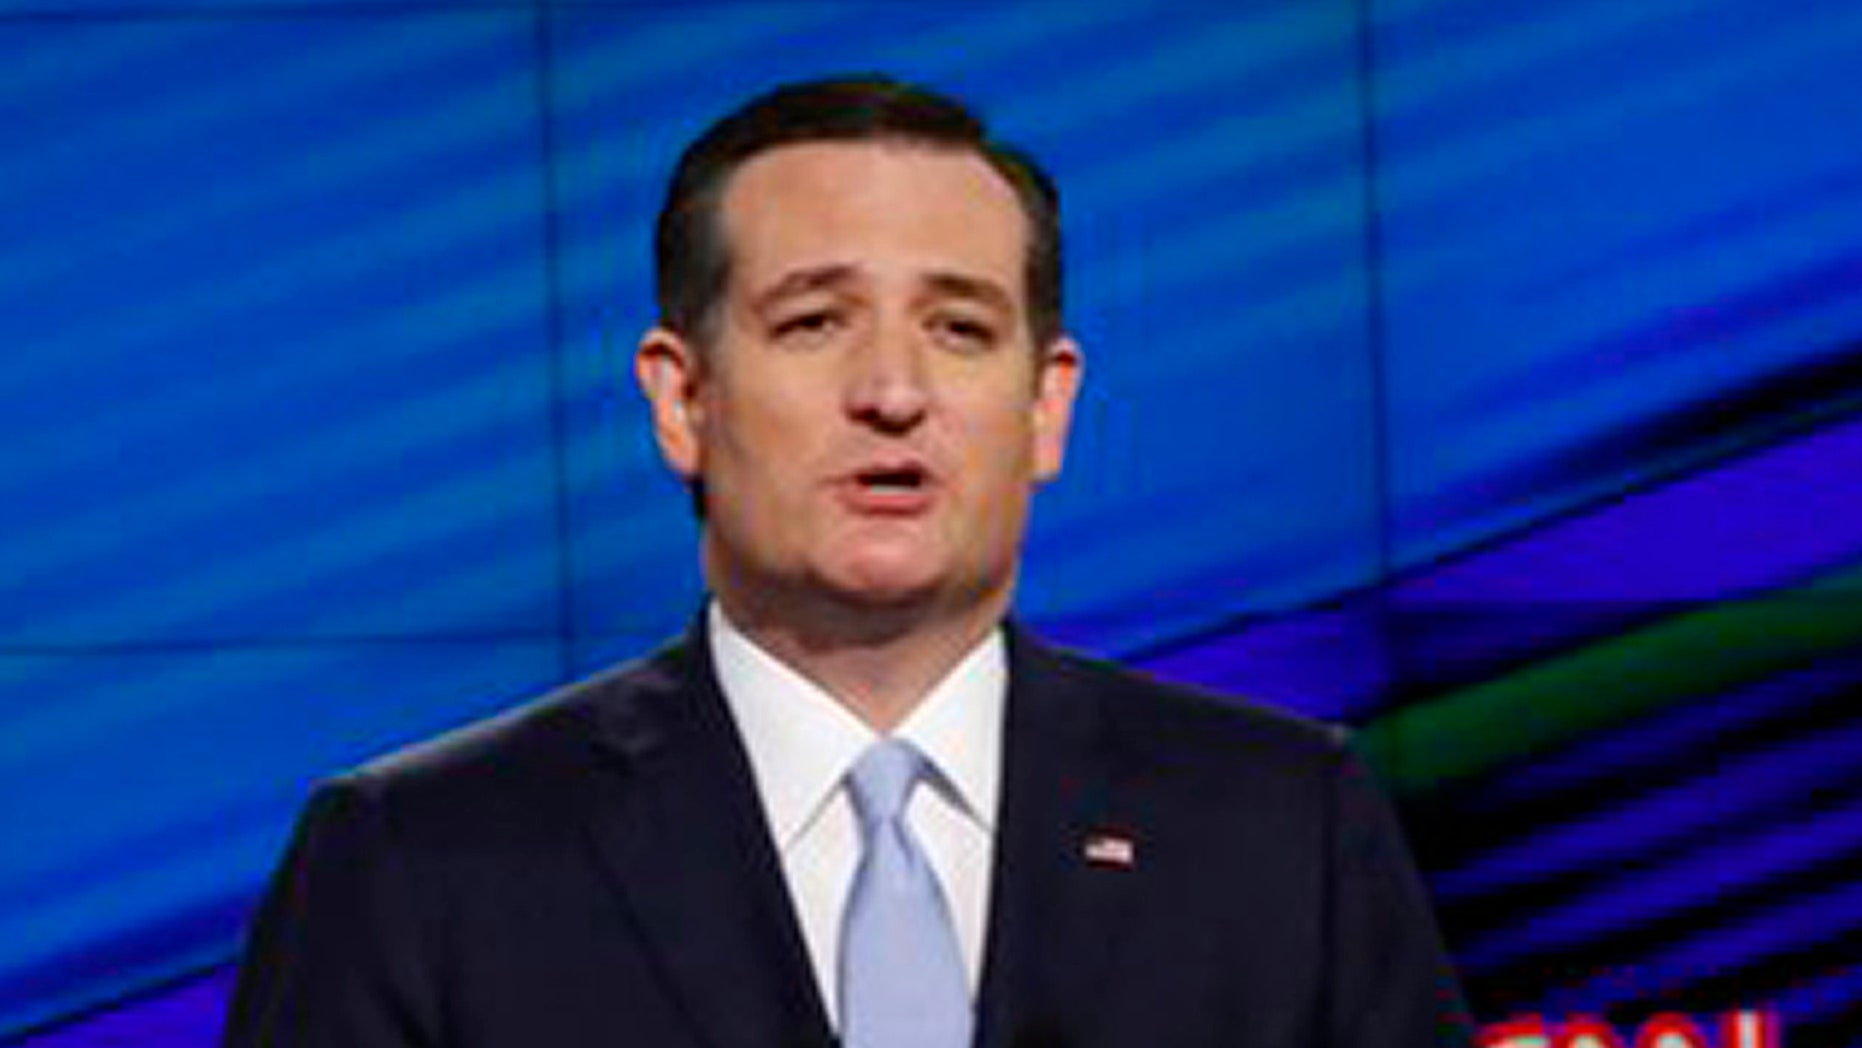 Ted Cruz spoke with CNN amid staffers accusing him of being afraid to appear on the network.